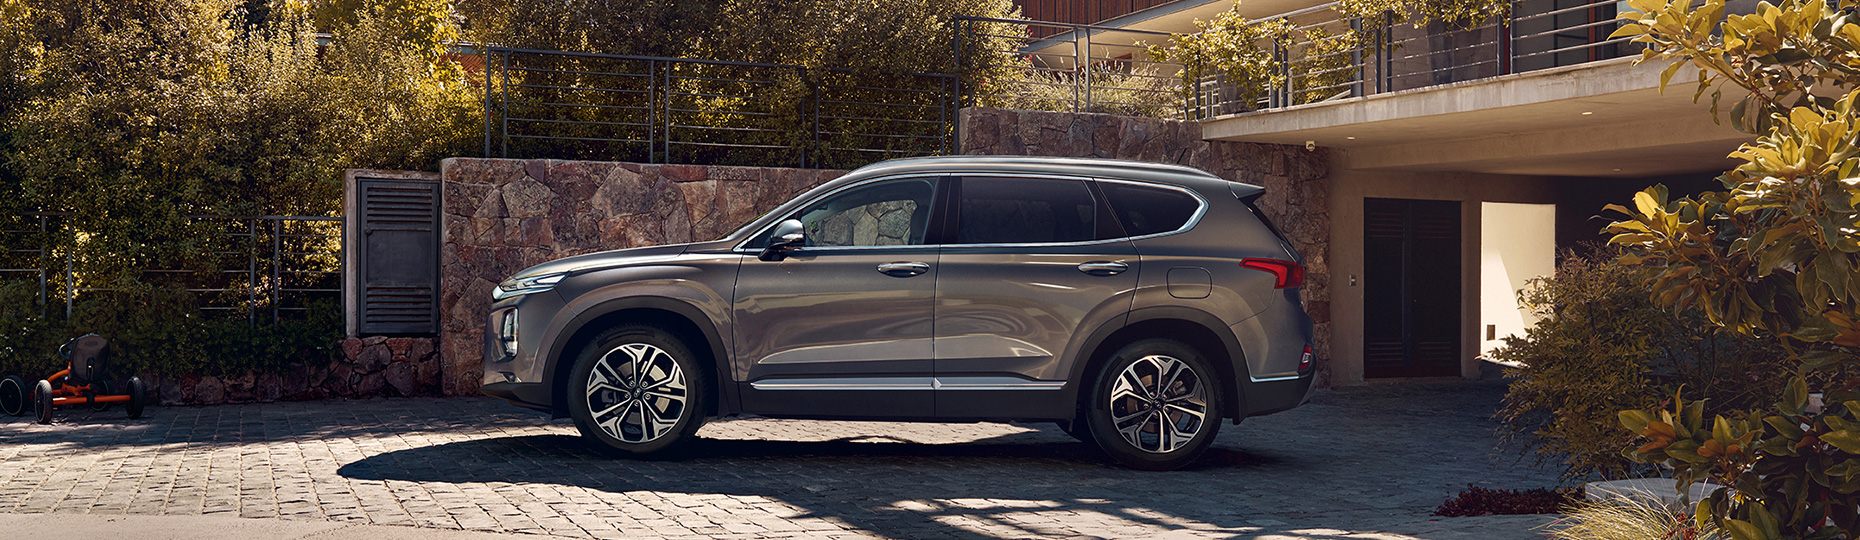 The All-New SANTA FE